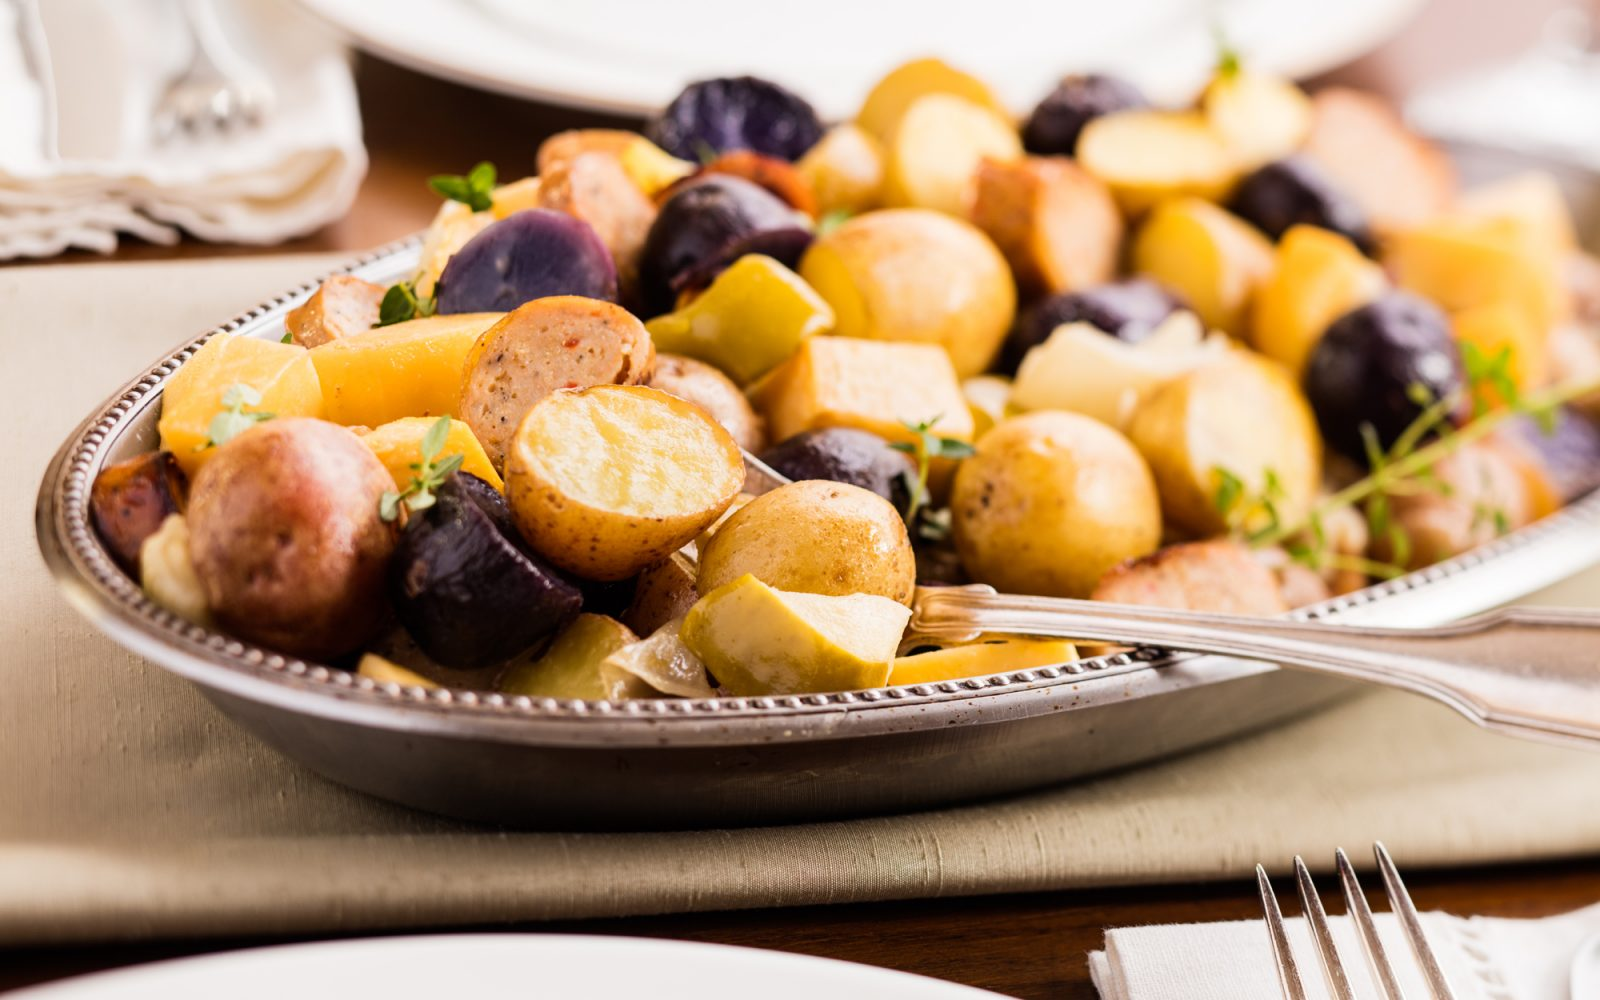 Sausage and Potatoes with Roasted Apples